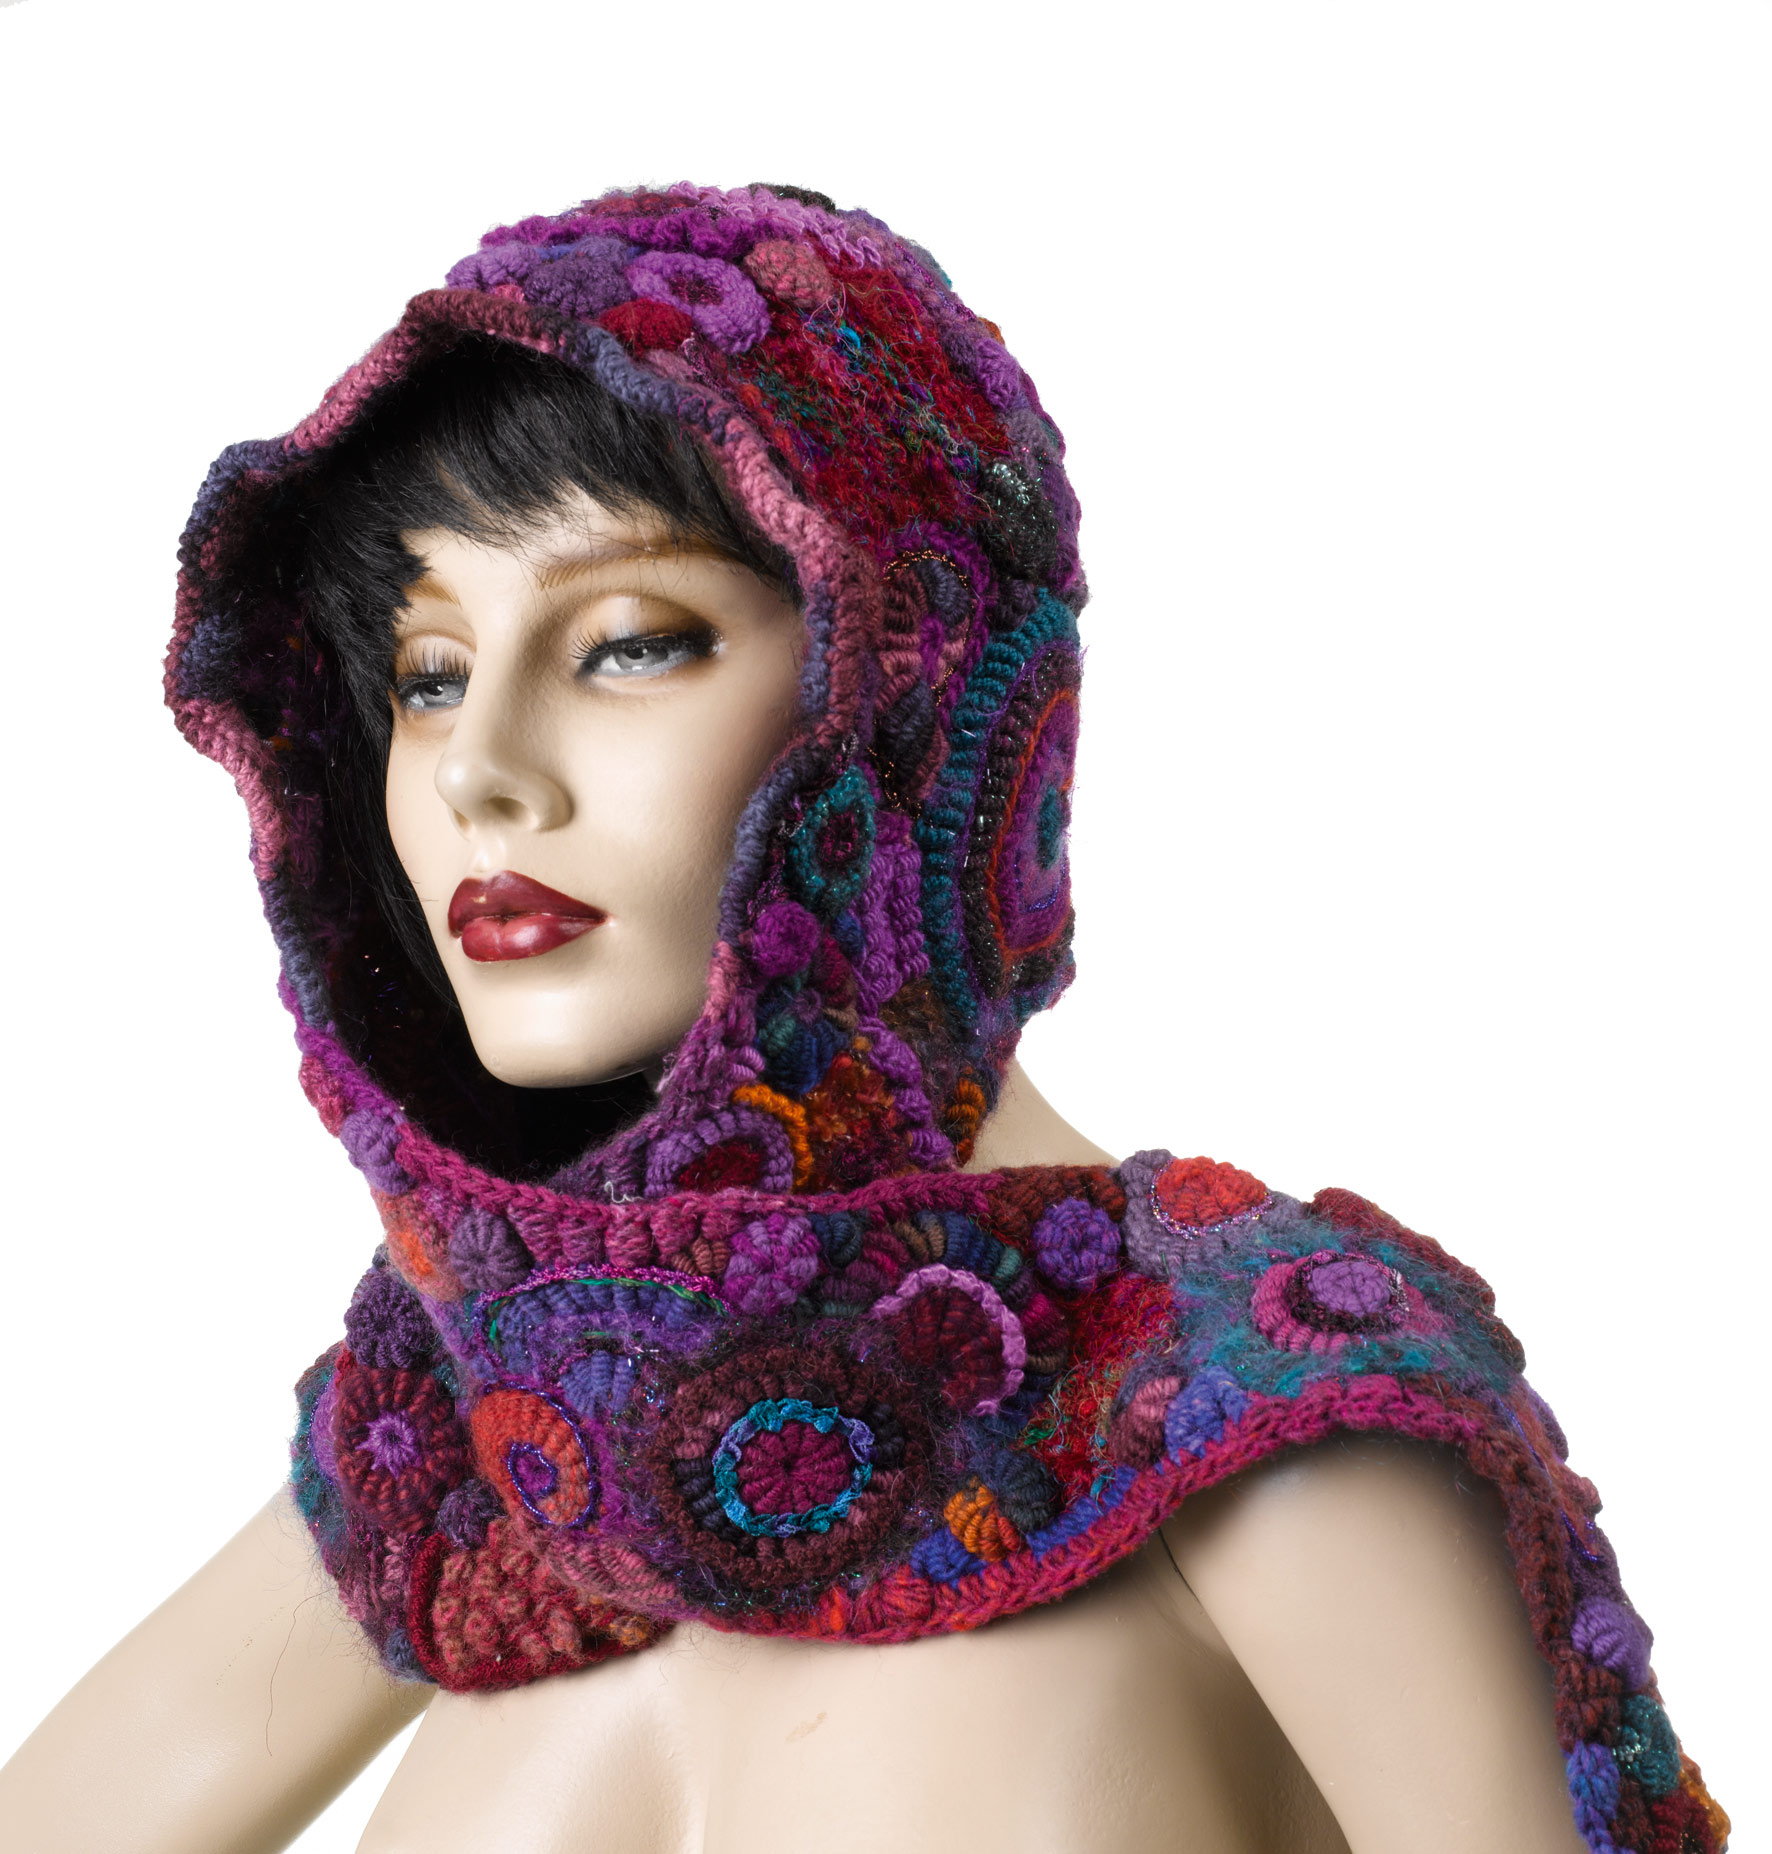 Free Knitting Pattern For A Hooded Scarf : Combo Hooded Scarf (3) Renate Kirkpatricks Freeform ...